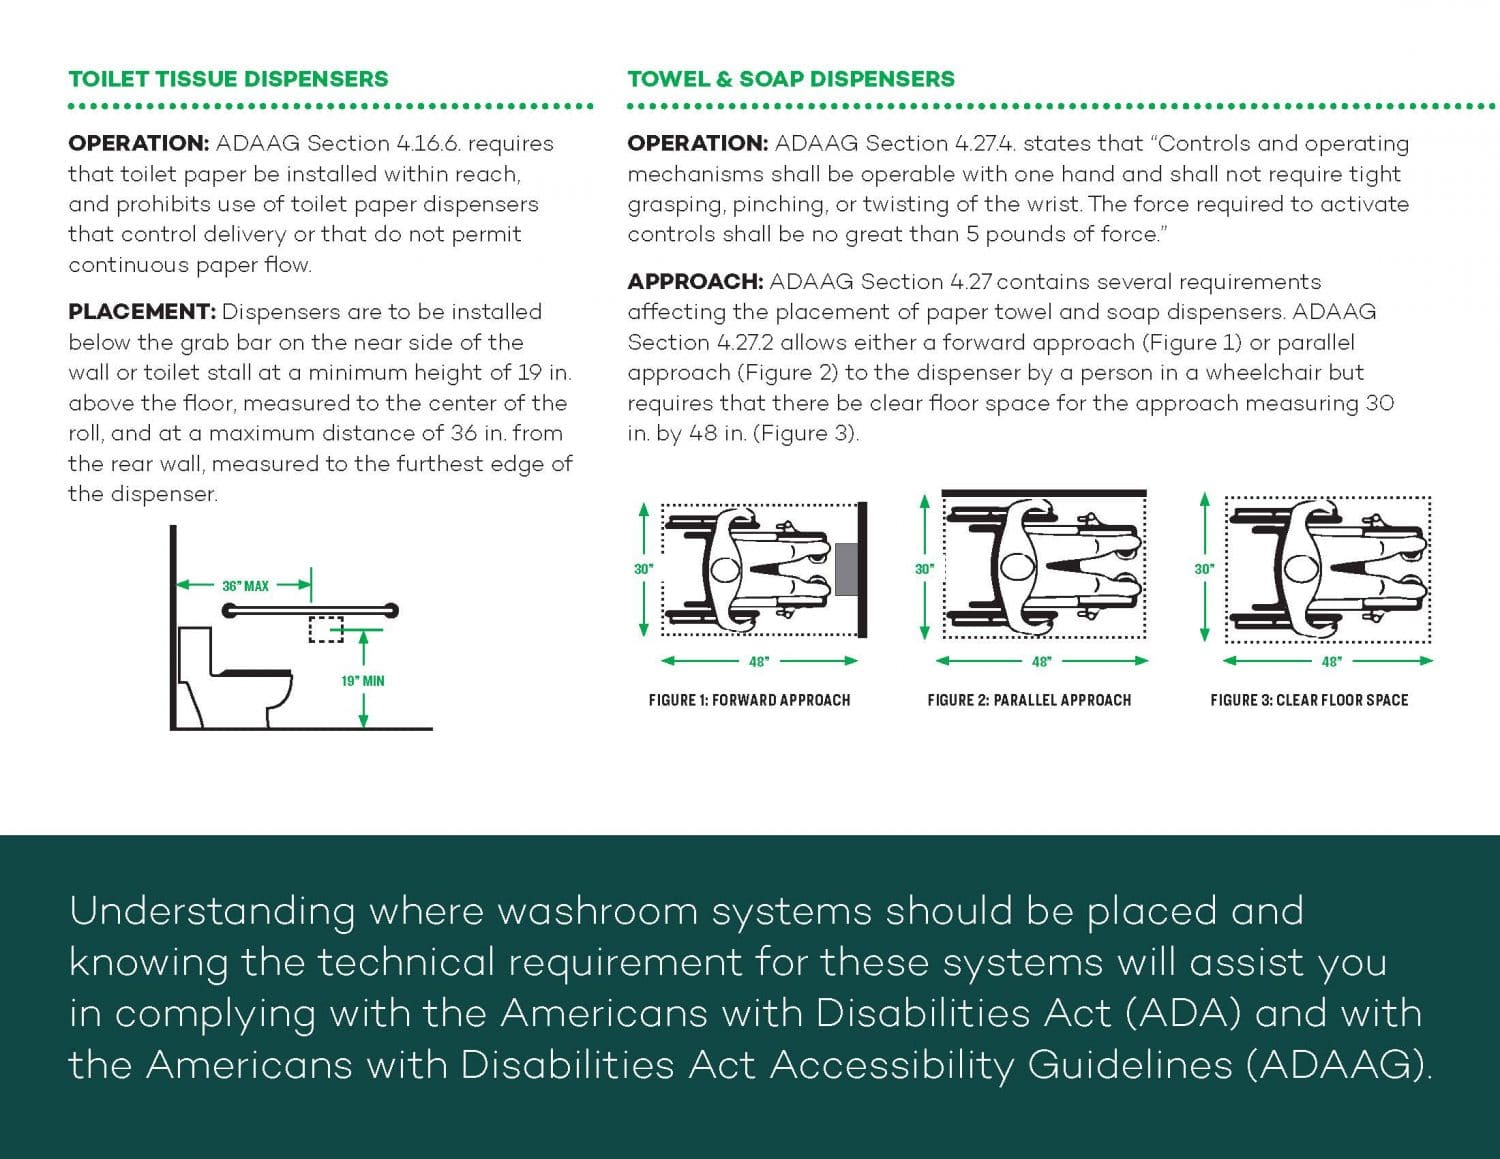 Washroom ADA Compliance Guide